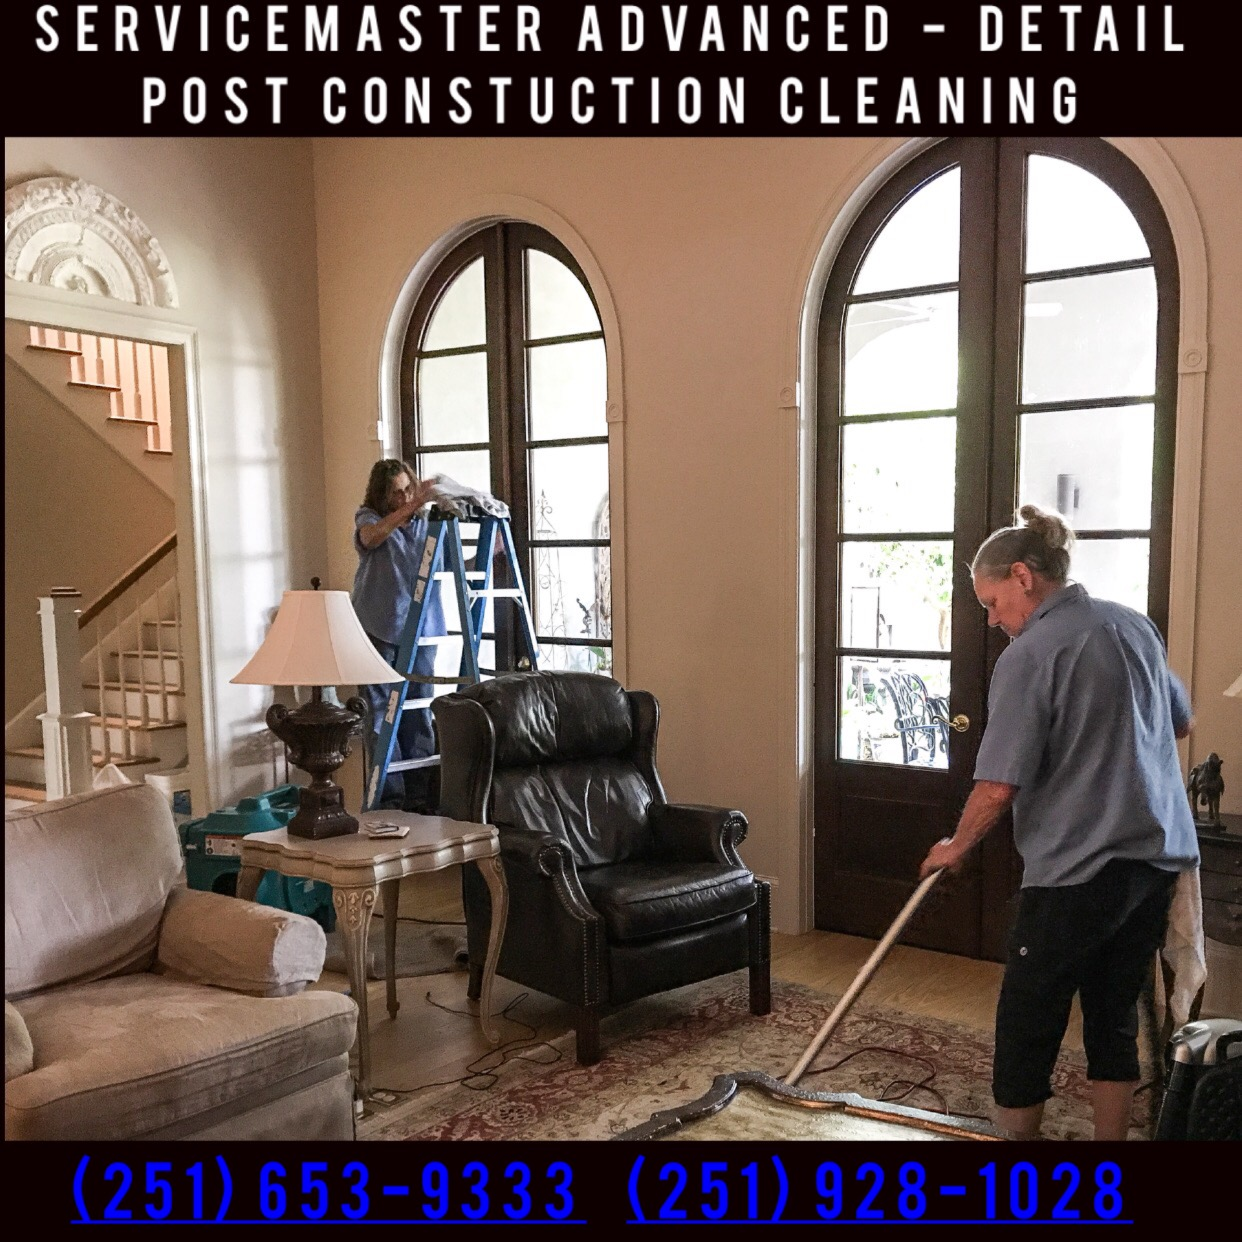 Your Project In On Time Mobile Baldwin County ServiceMaster Advanced Services We Have Performed Huge Jobs For Some Of Alabamas